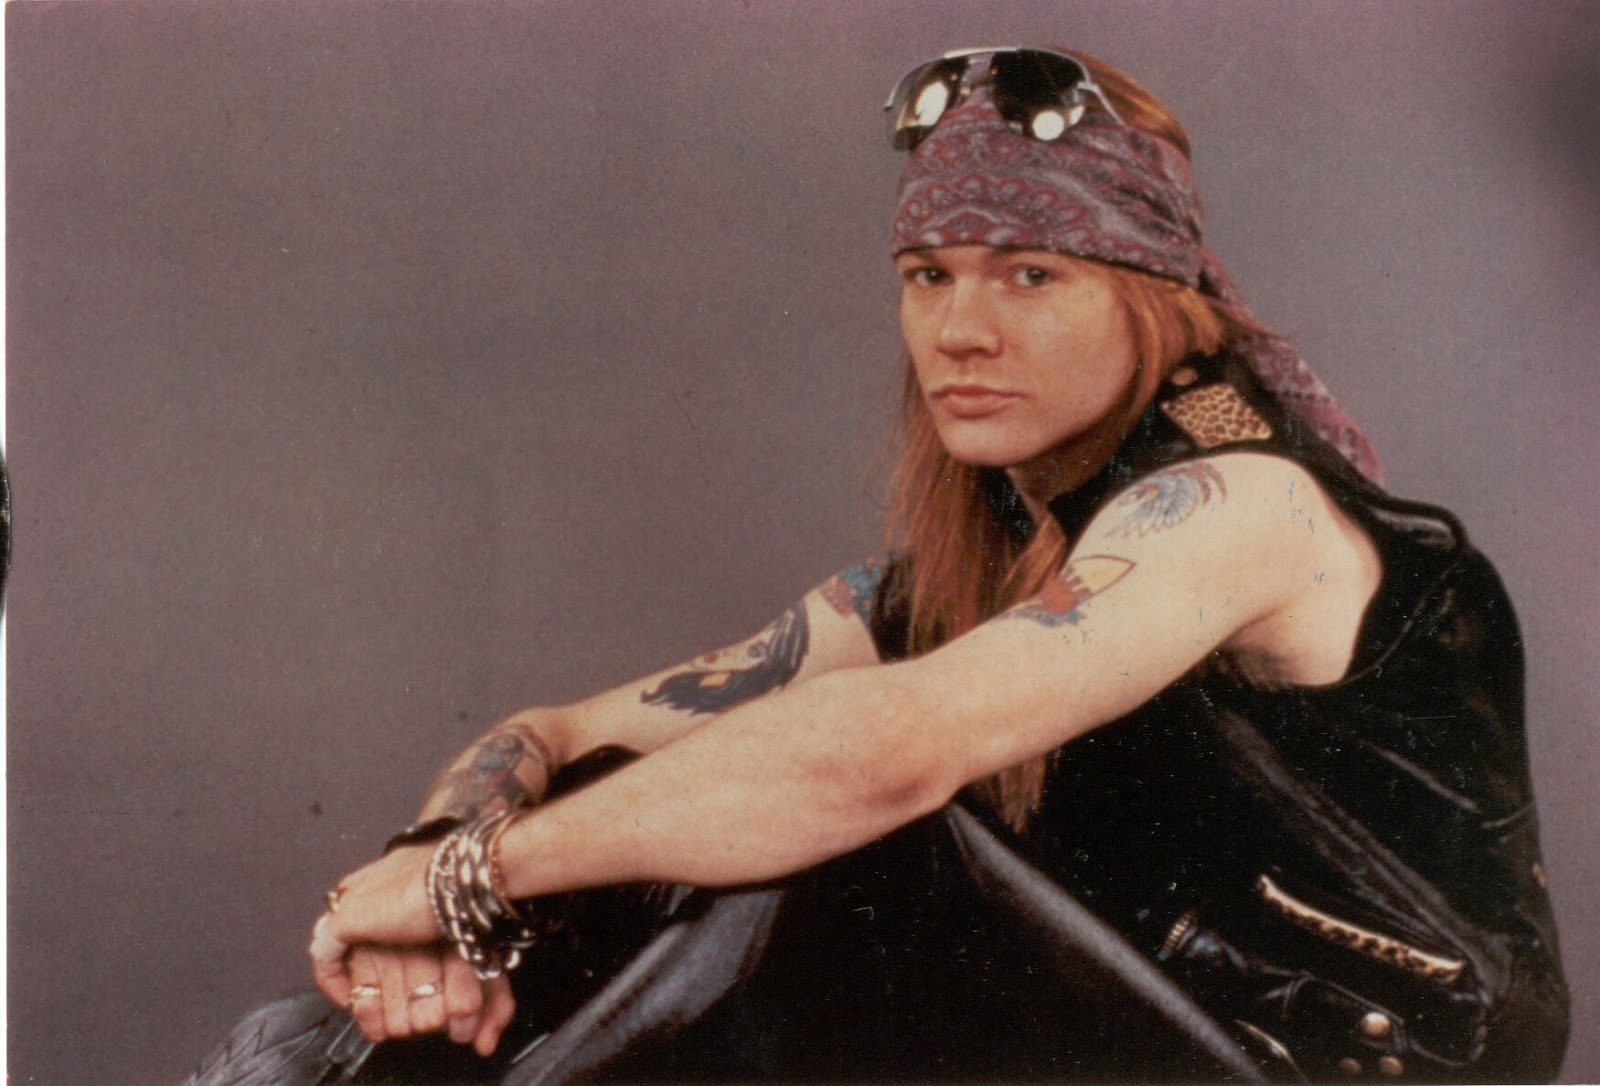 Axl rose do you remember guns n roses you definitely knows who he is